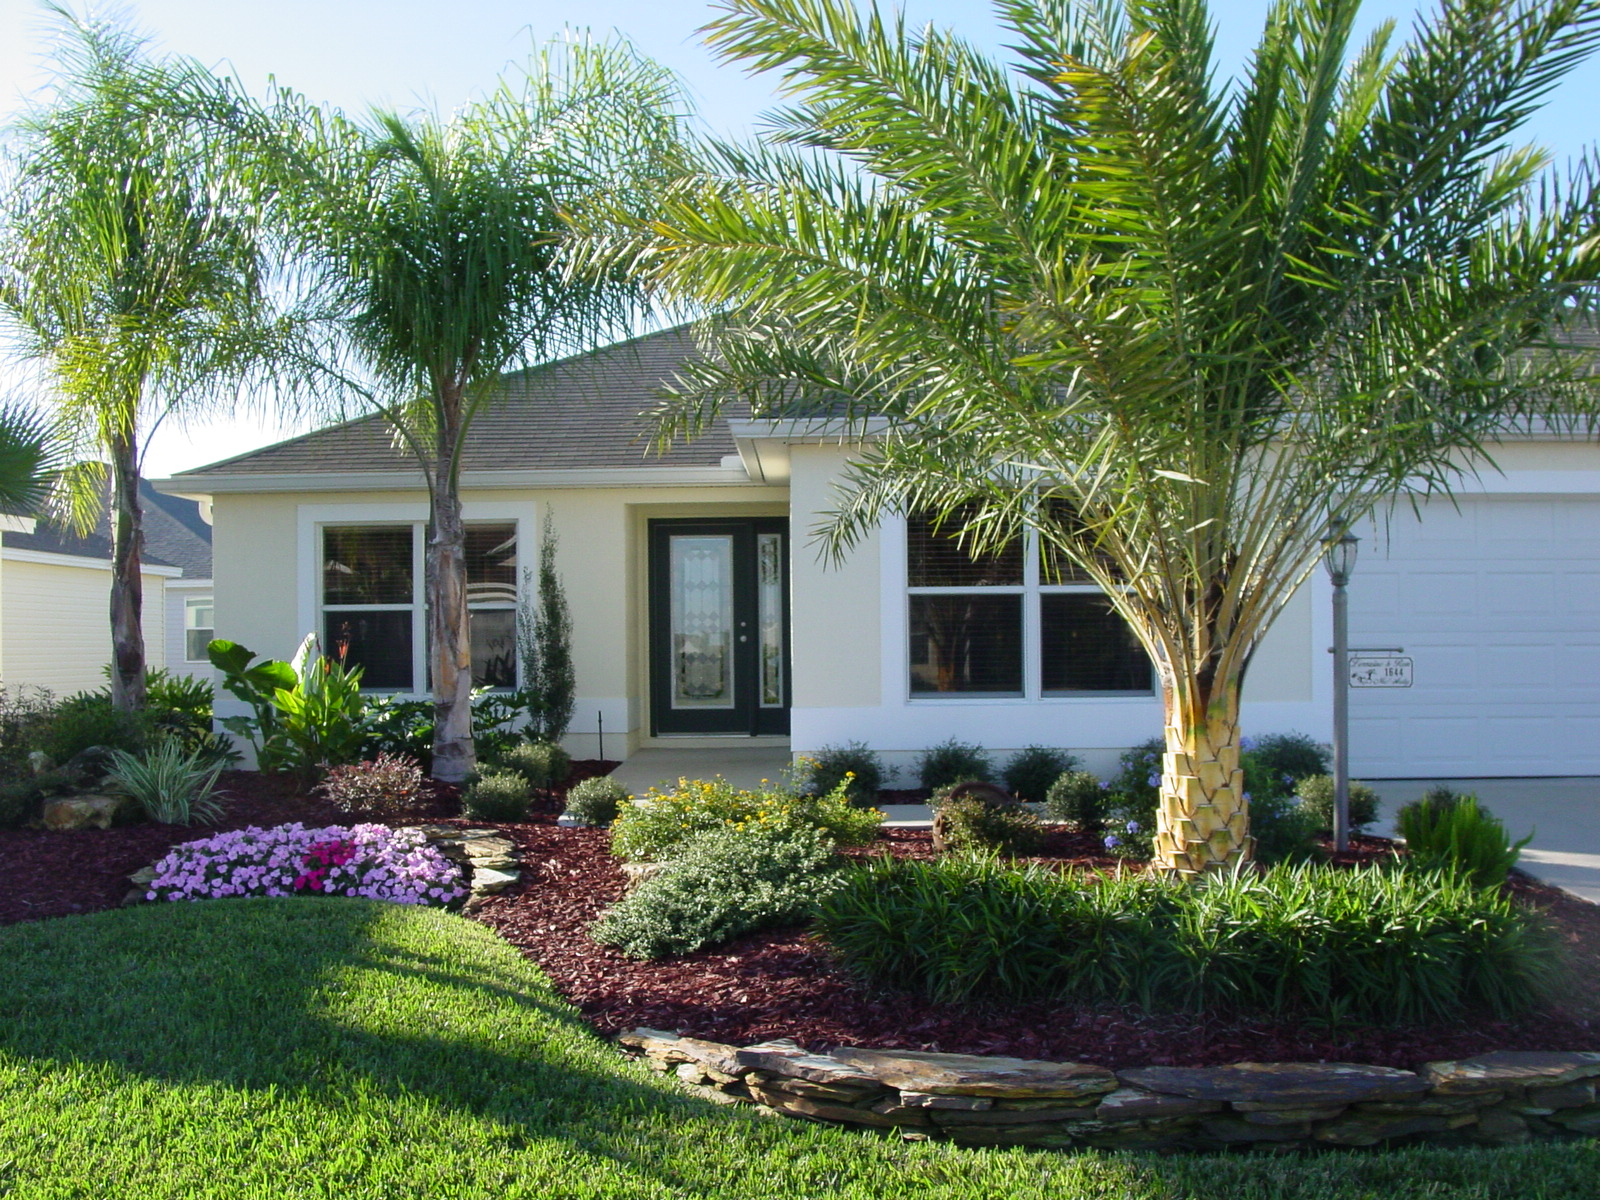 Florida garden landscape ideas photograph rons landscaping for Landscaping ideas